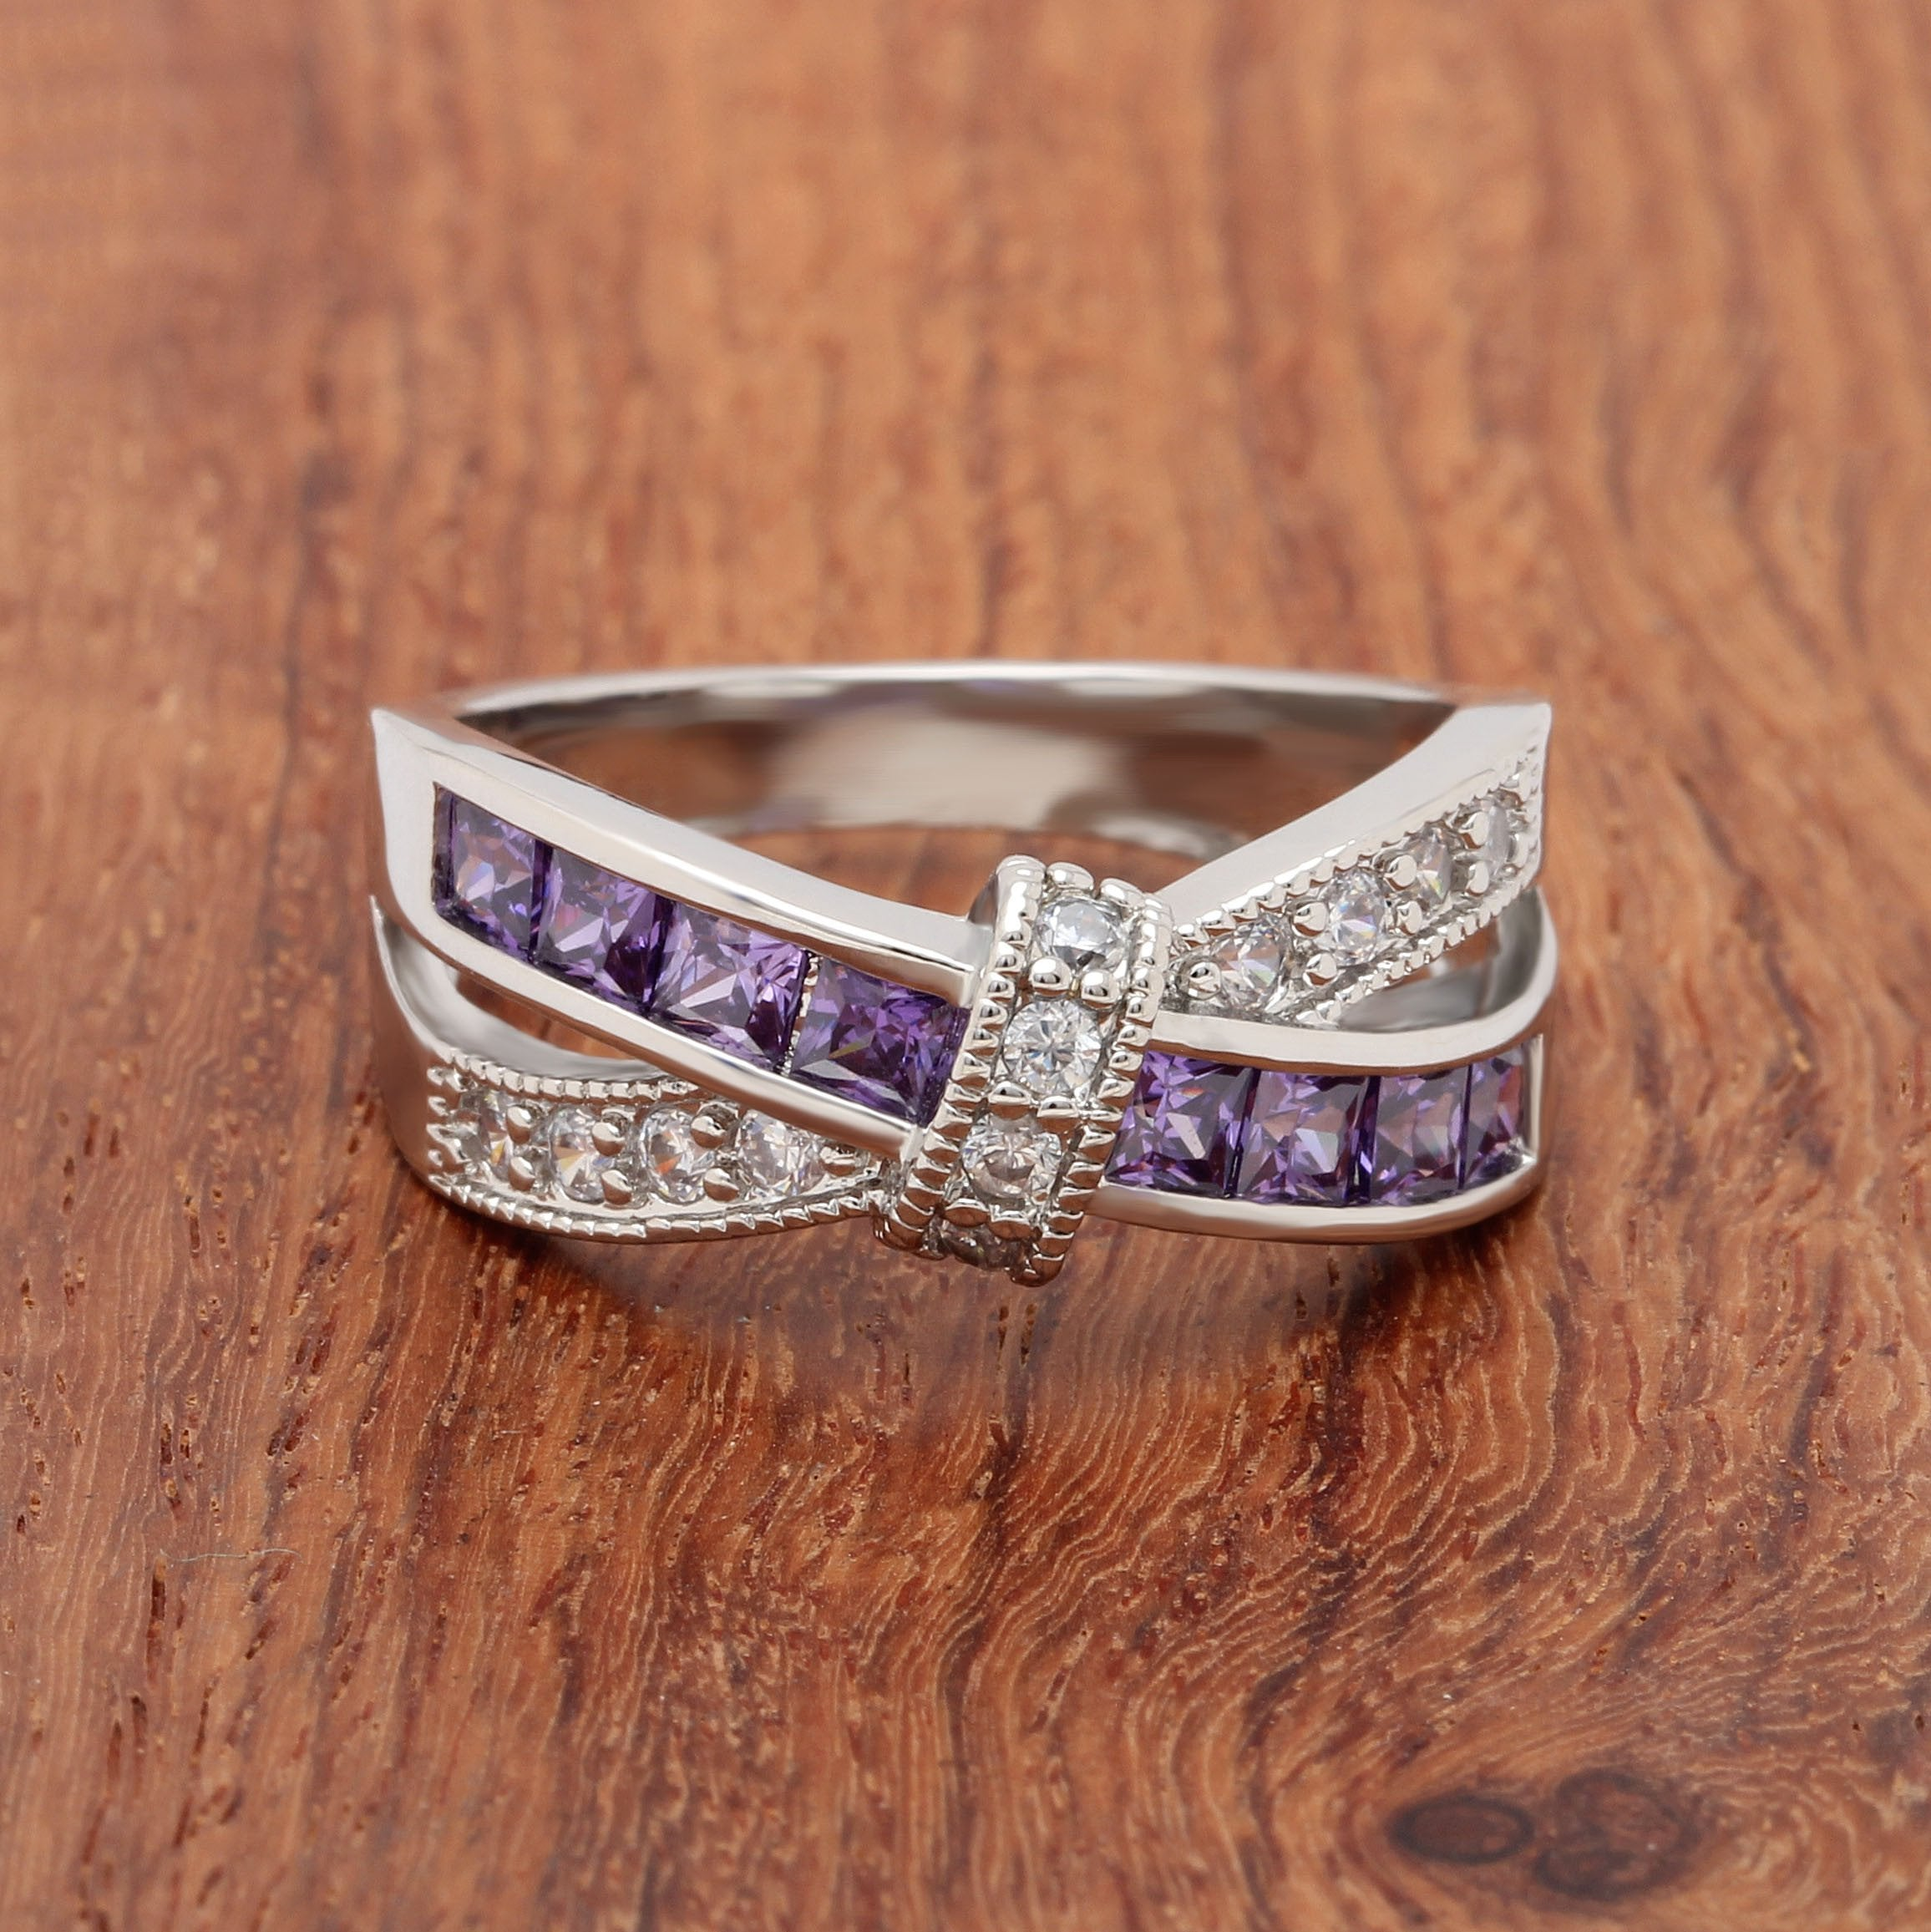 ring tri cut oval blossom stone products engagement amethist wedding purple three zirconia light cubic cocktail cz amethyst faux anniversary lavendar rings diamond